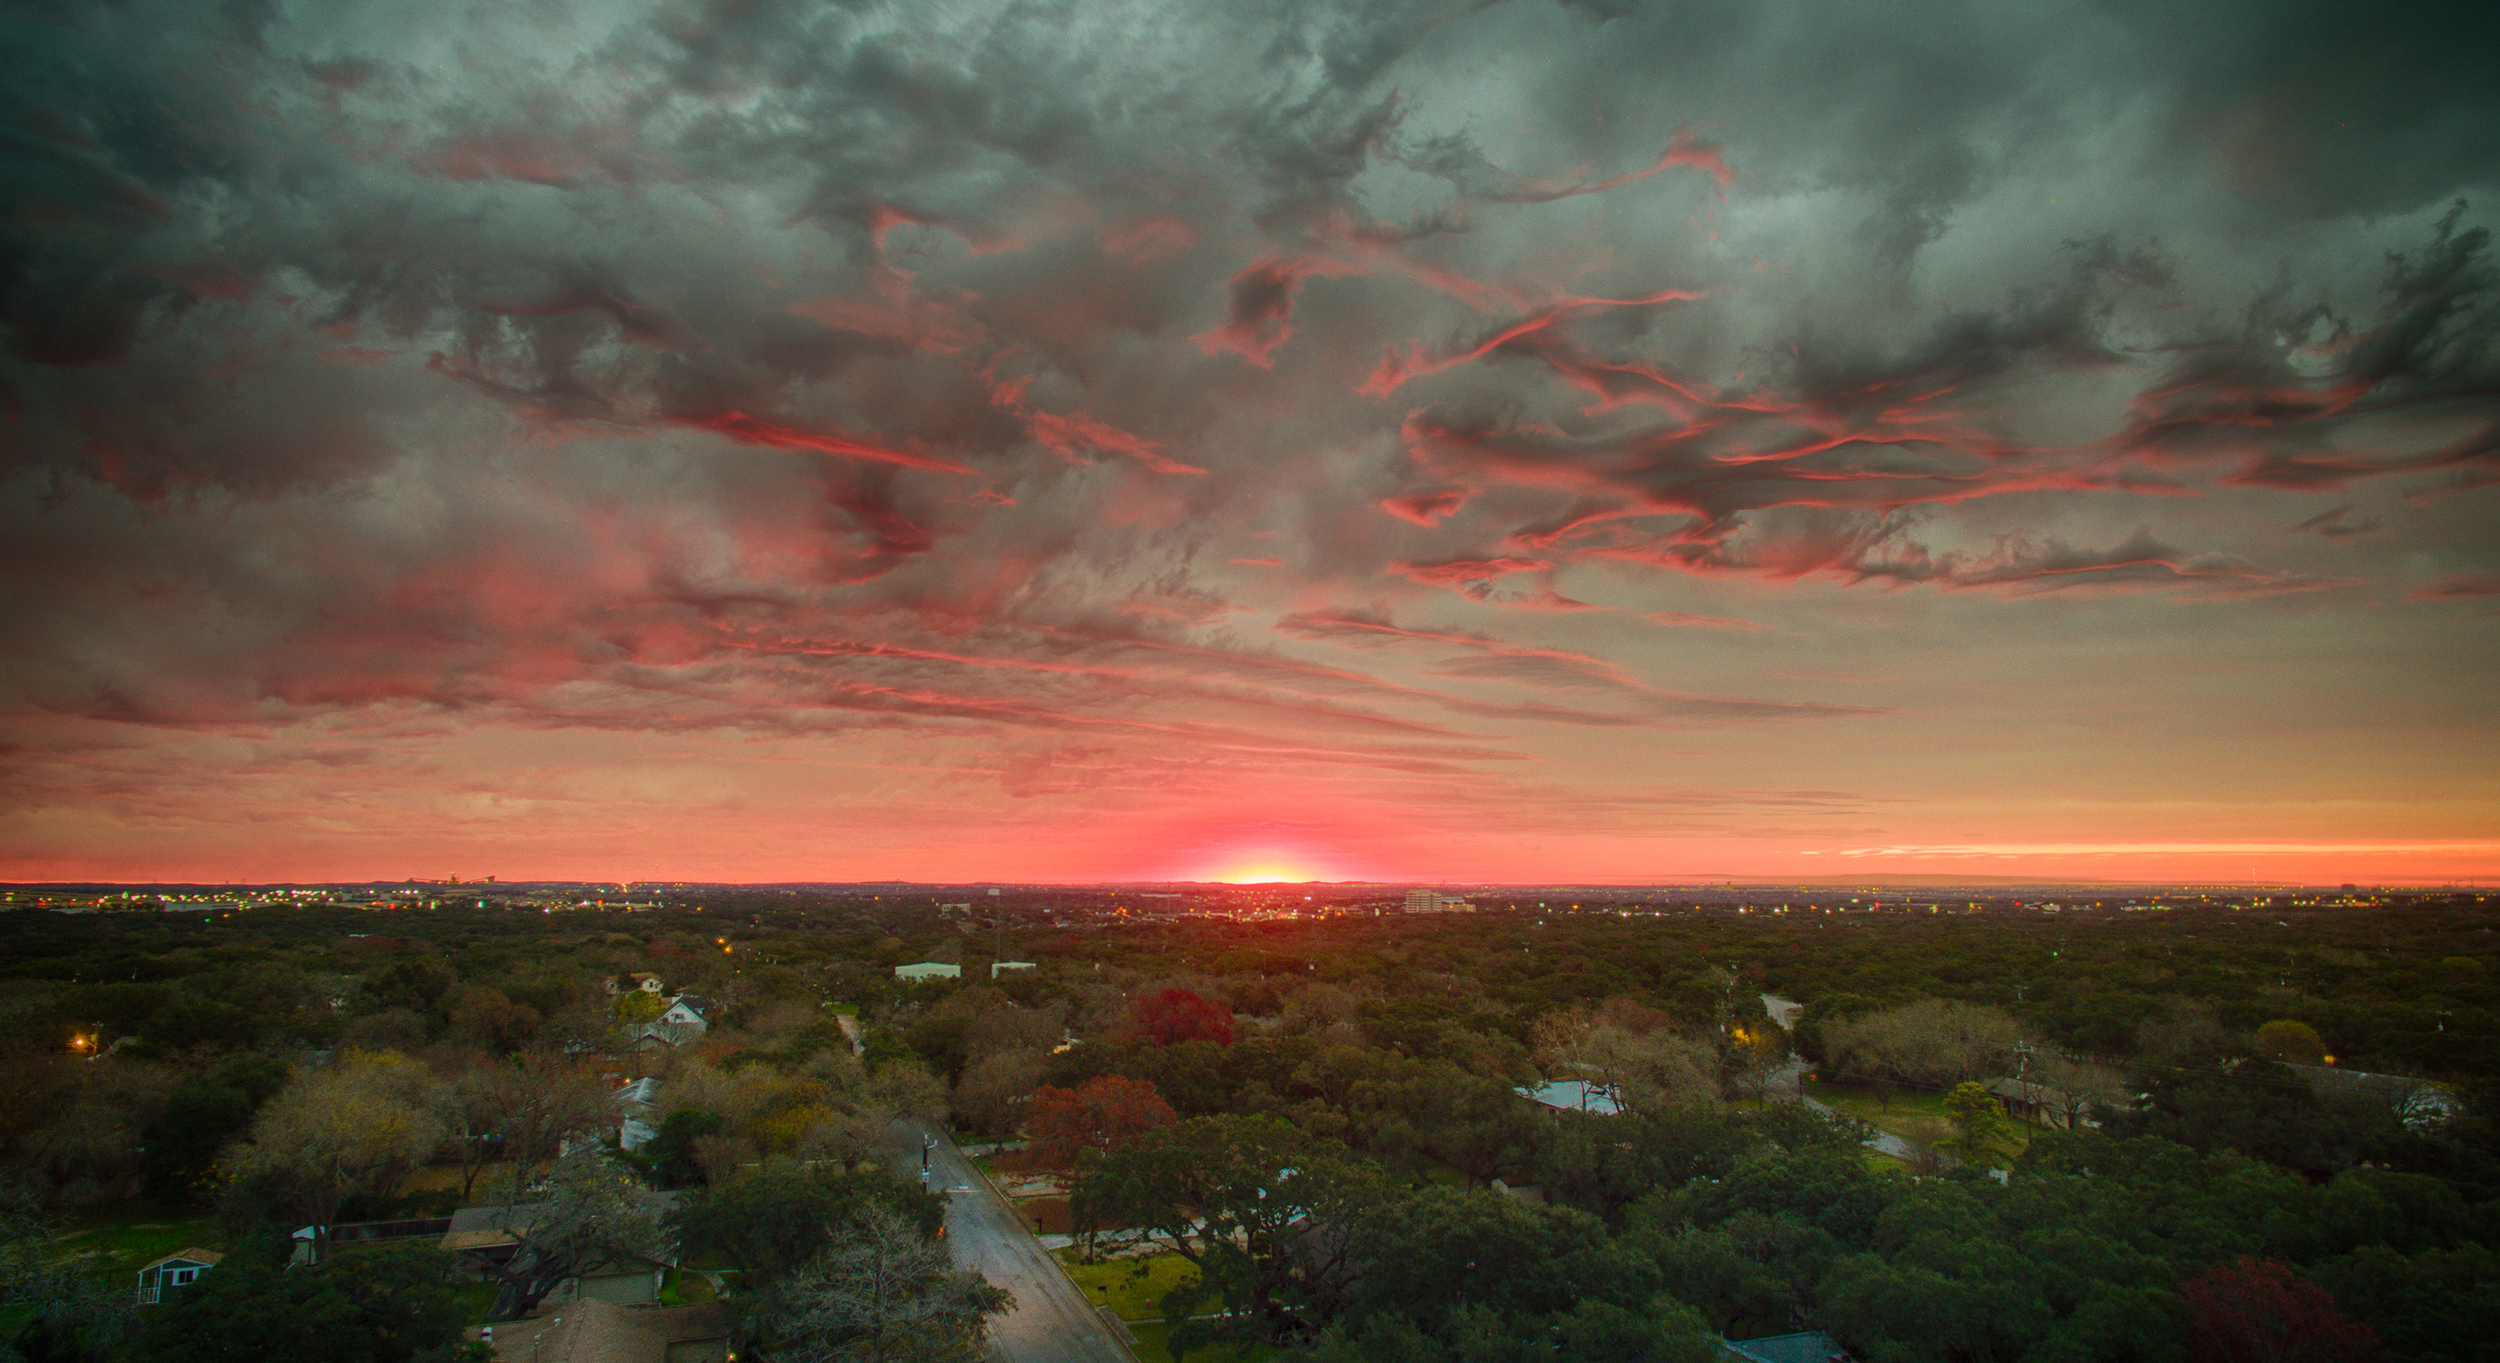 Sunrise over the Town of Hollywood Park, Texas